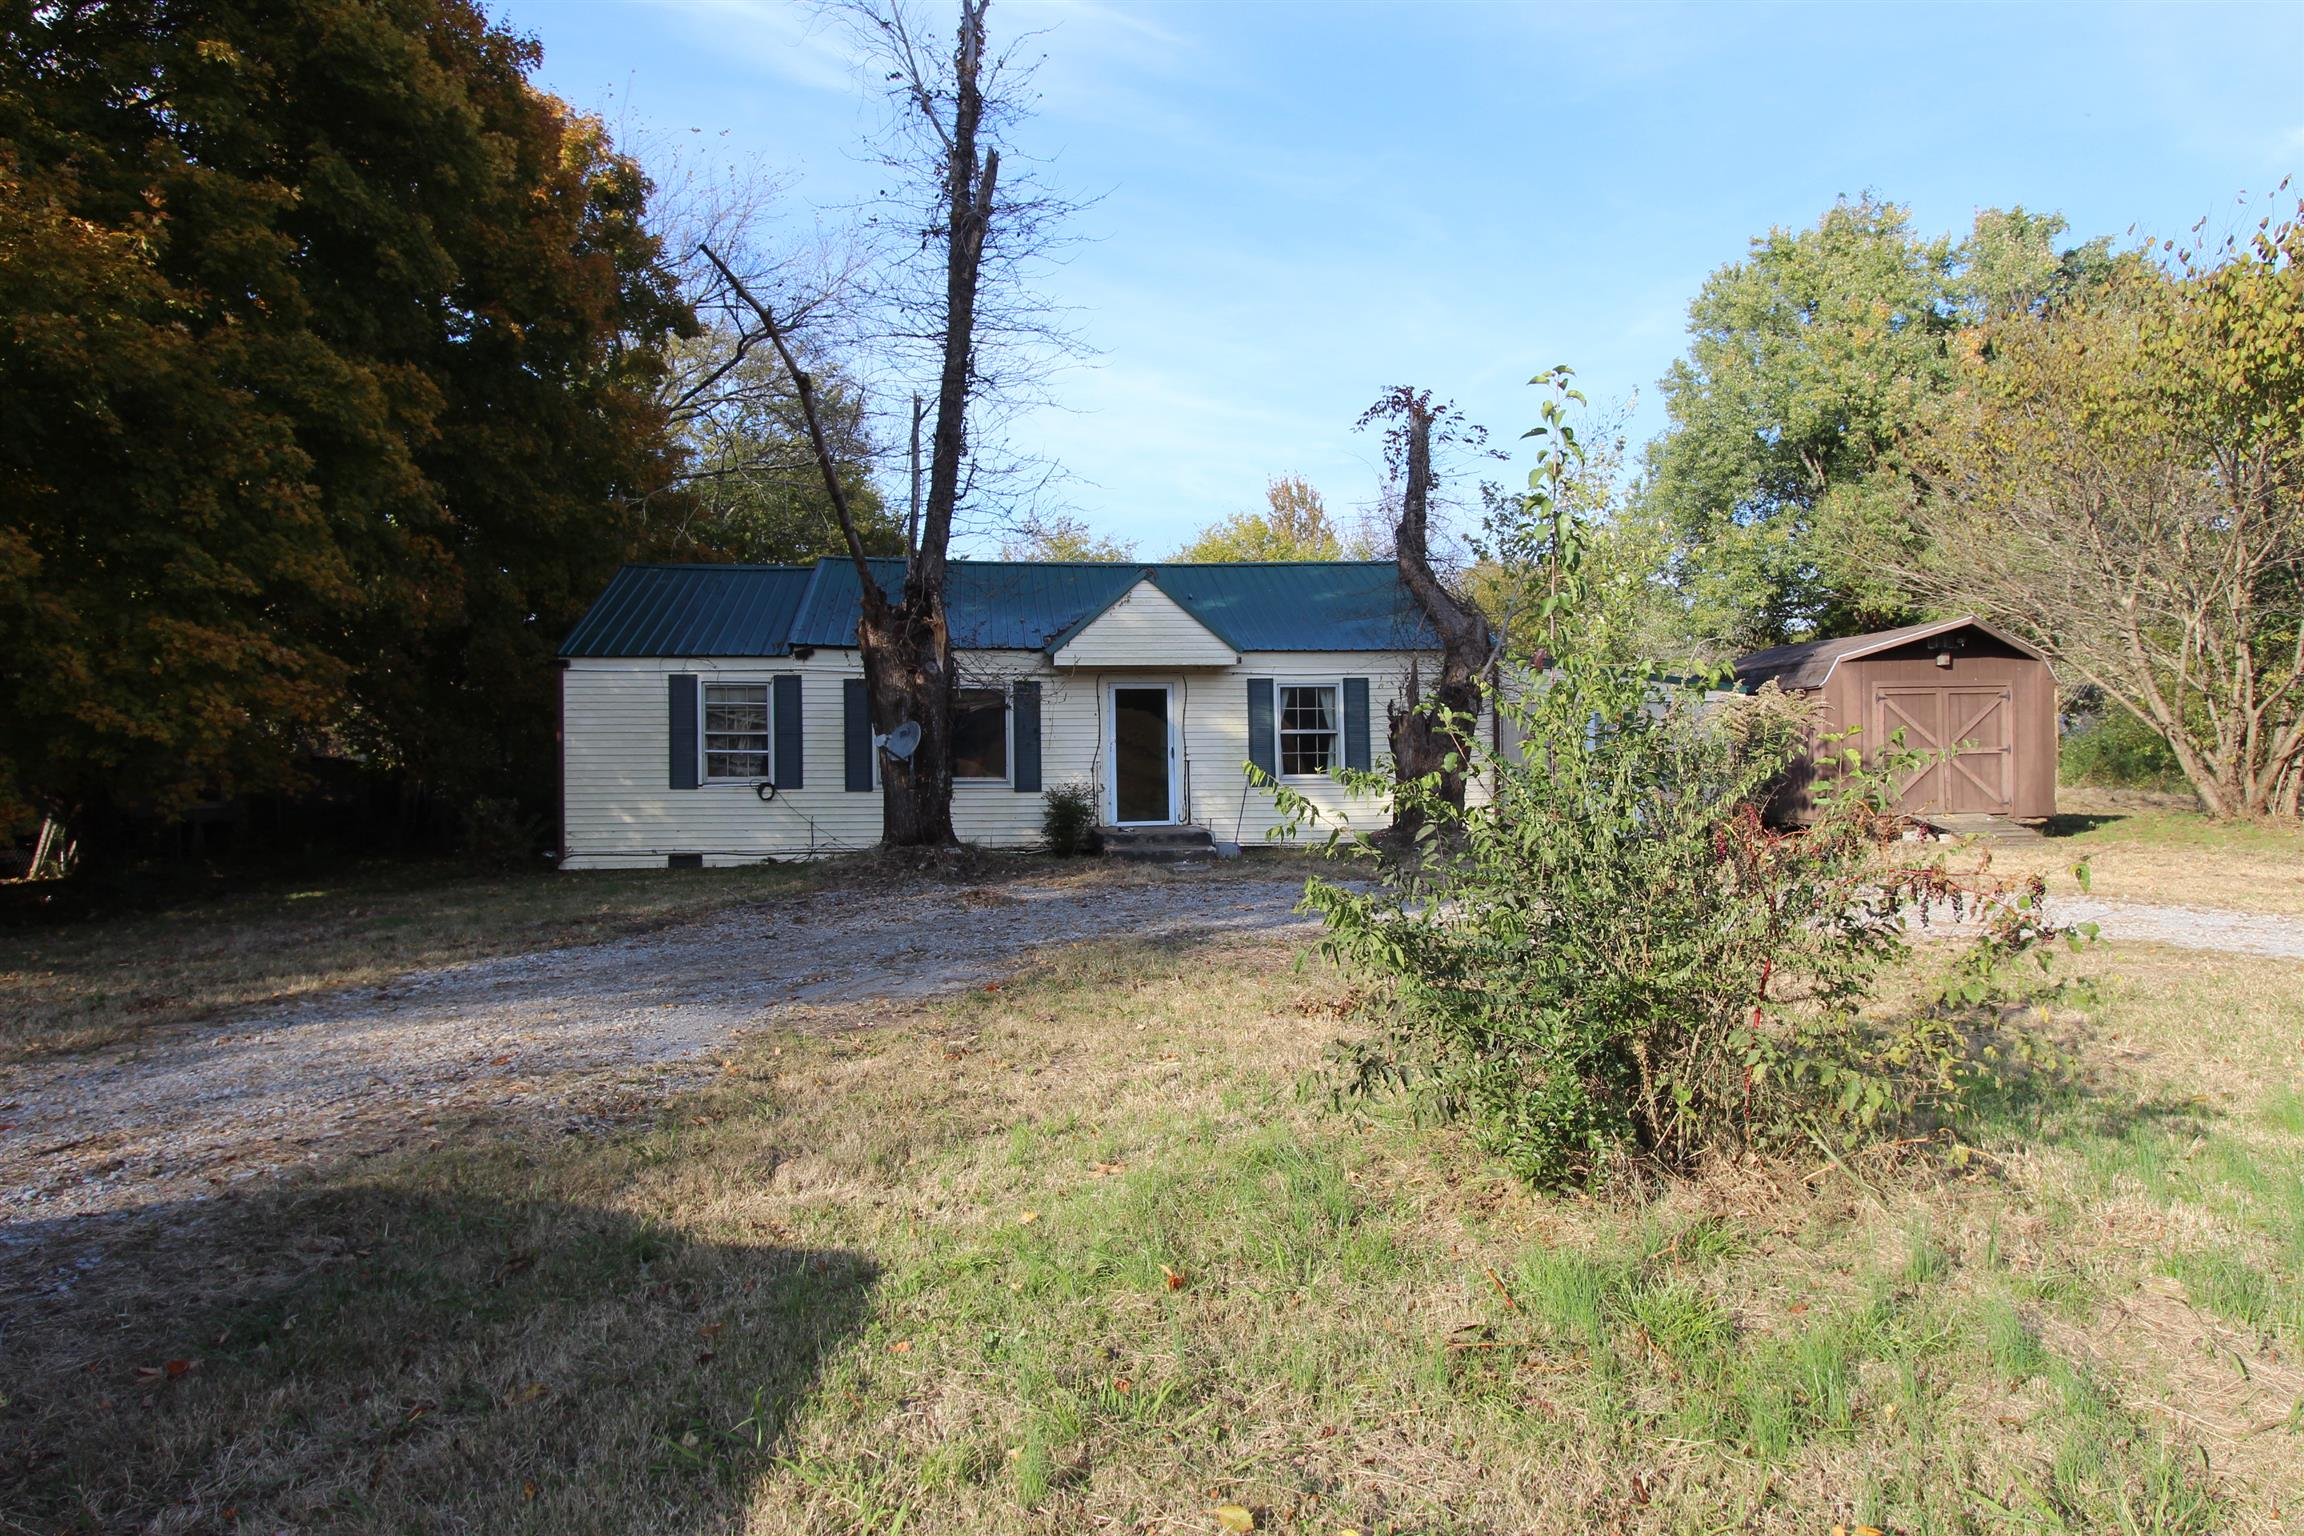 1315 Trousdale Ferry Pike, Lebanon in Wilson County County, TN 37087 Home for Sale